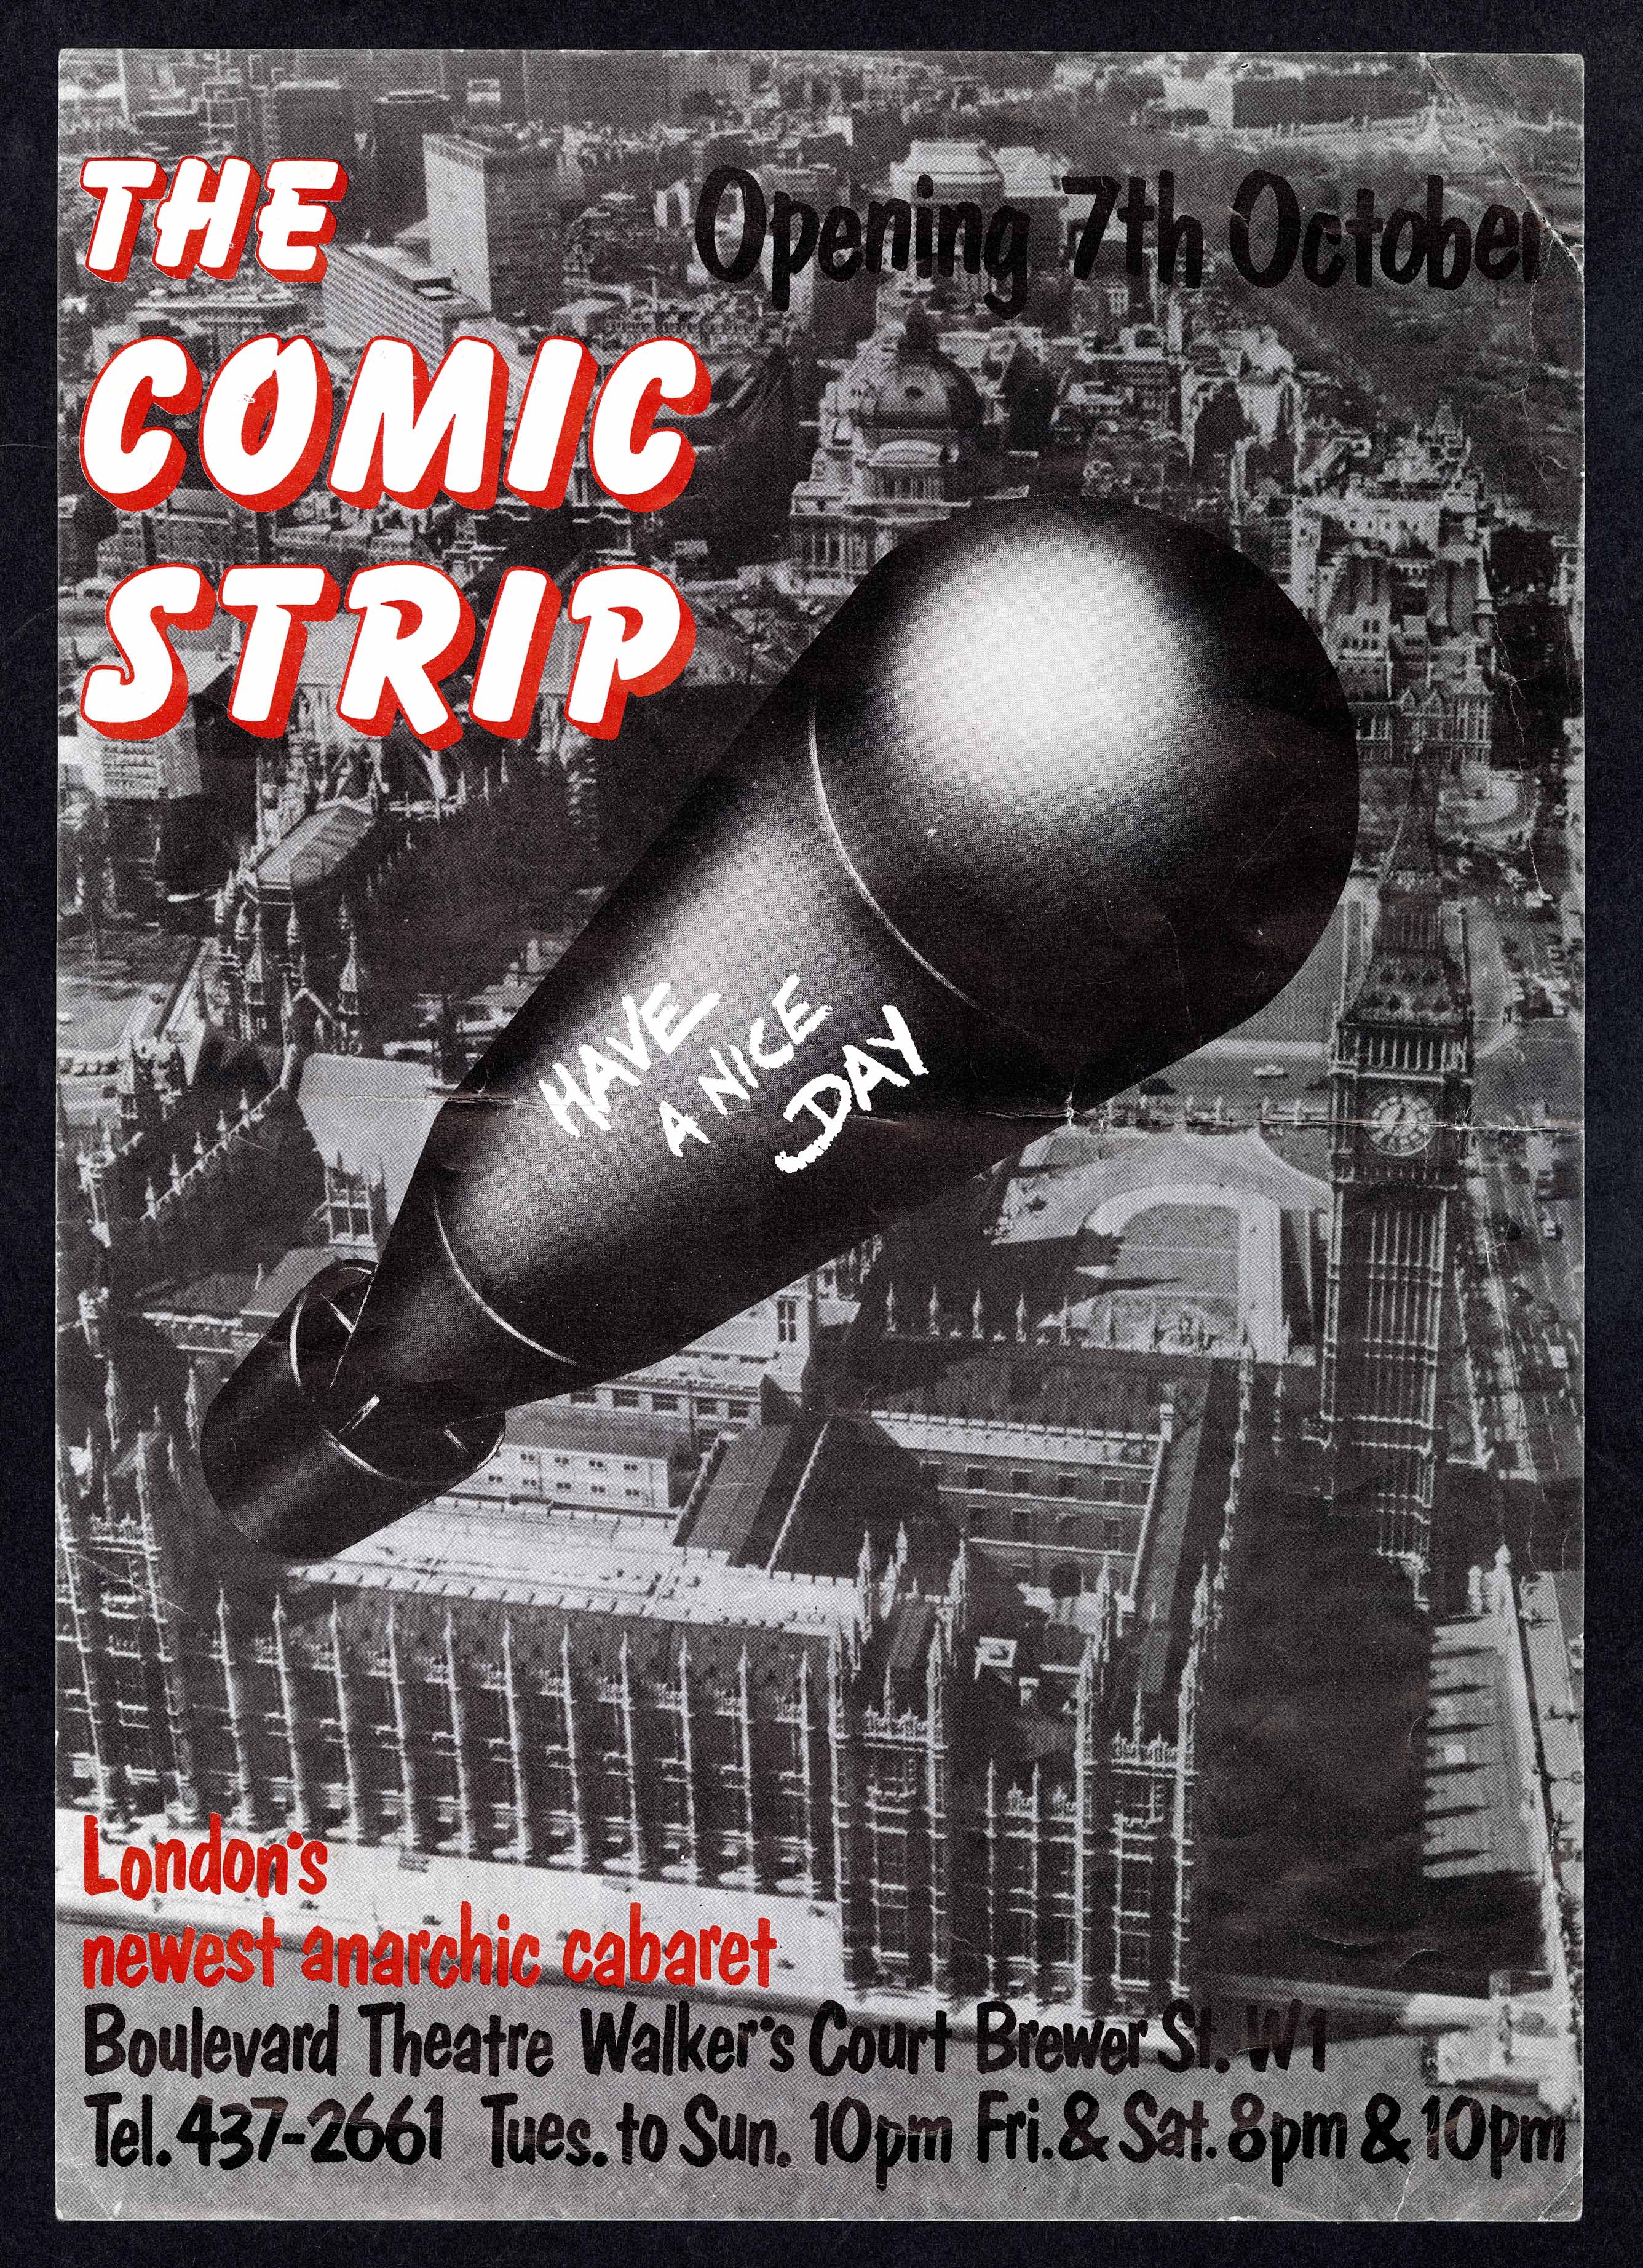 The Comic Strip poster, 1980